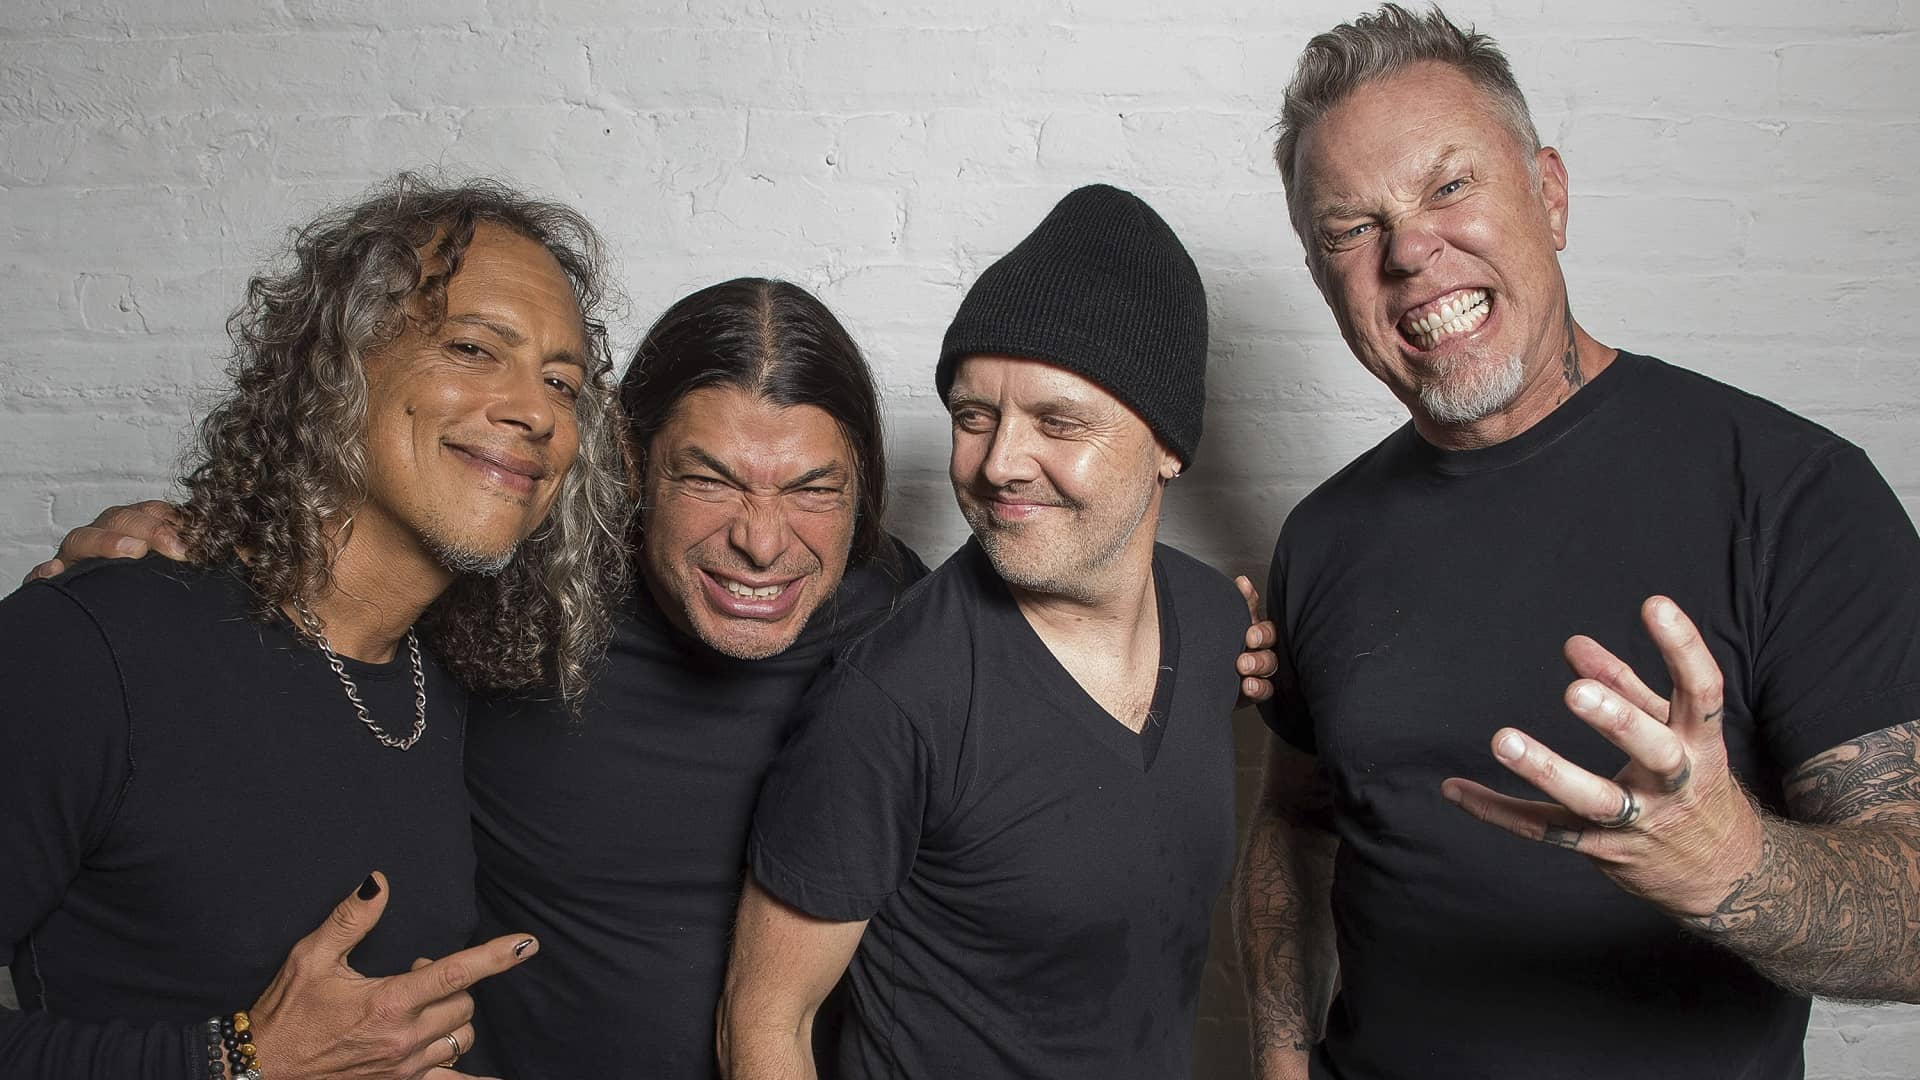 An all-you-can eat Metallica buffet of 'Black Album' covers